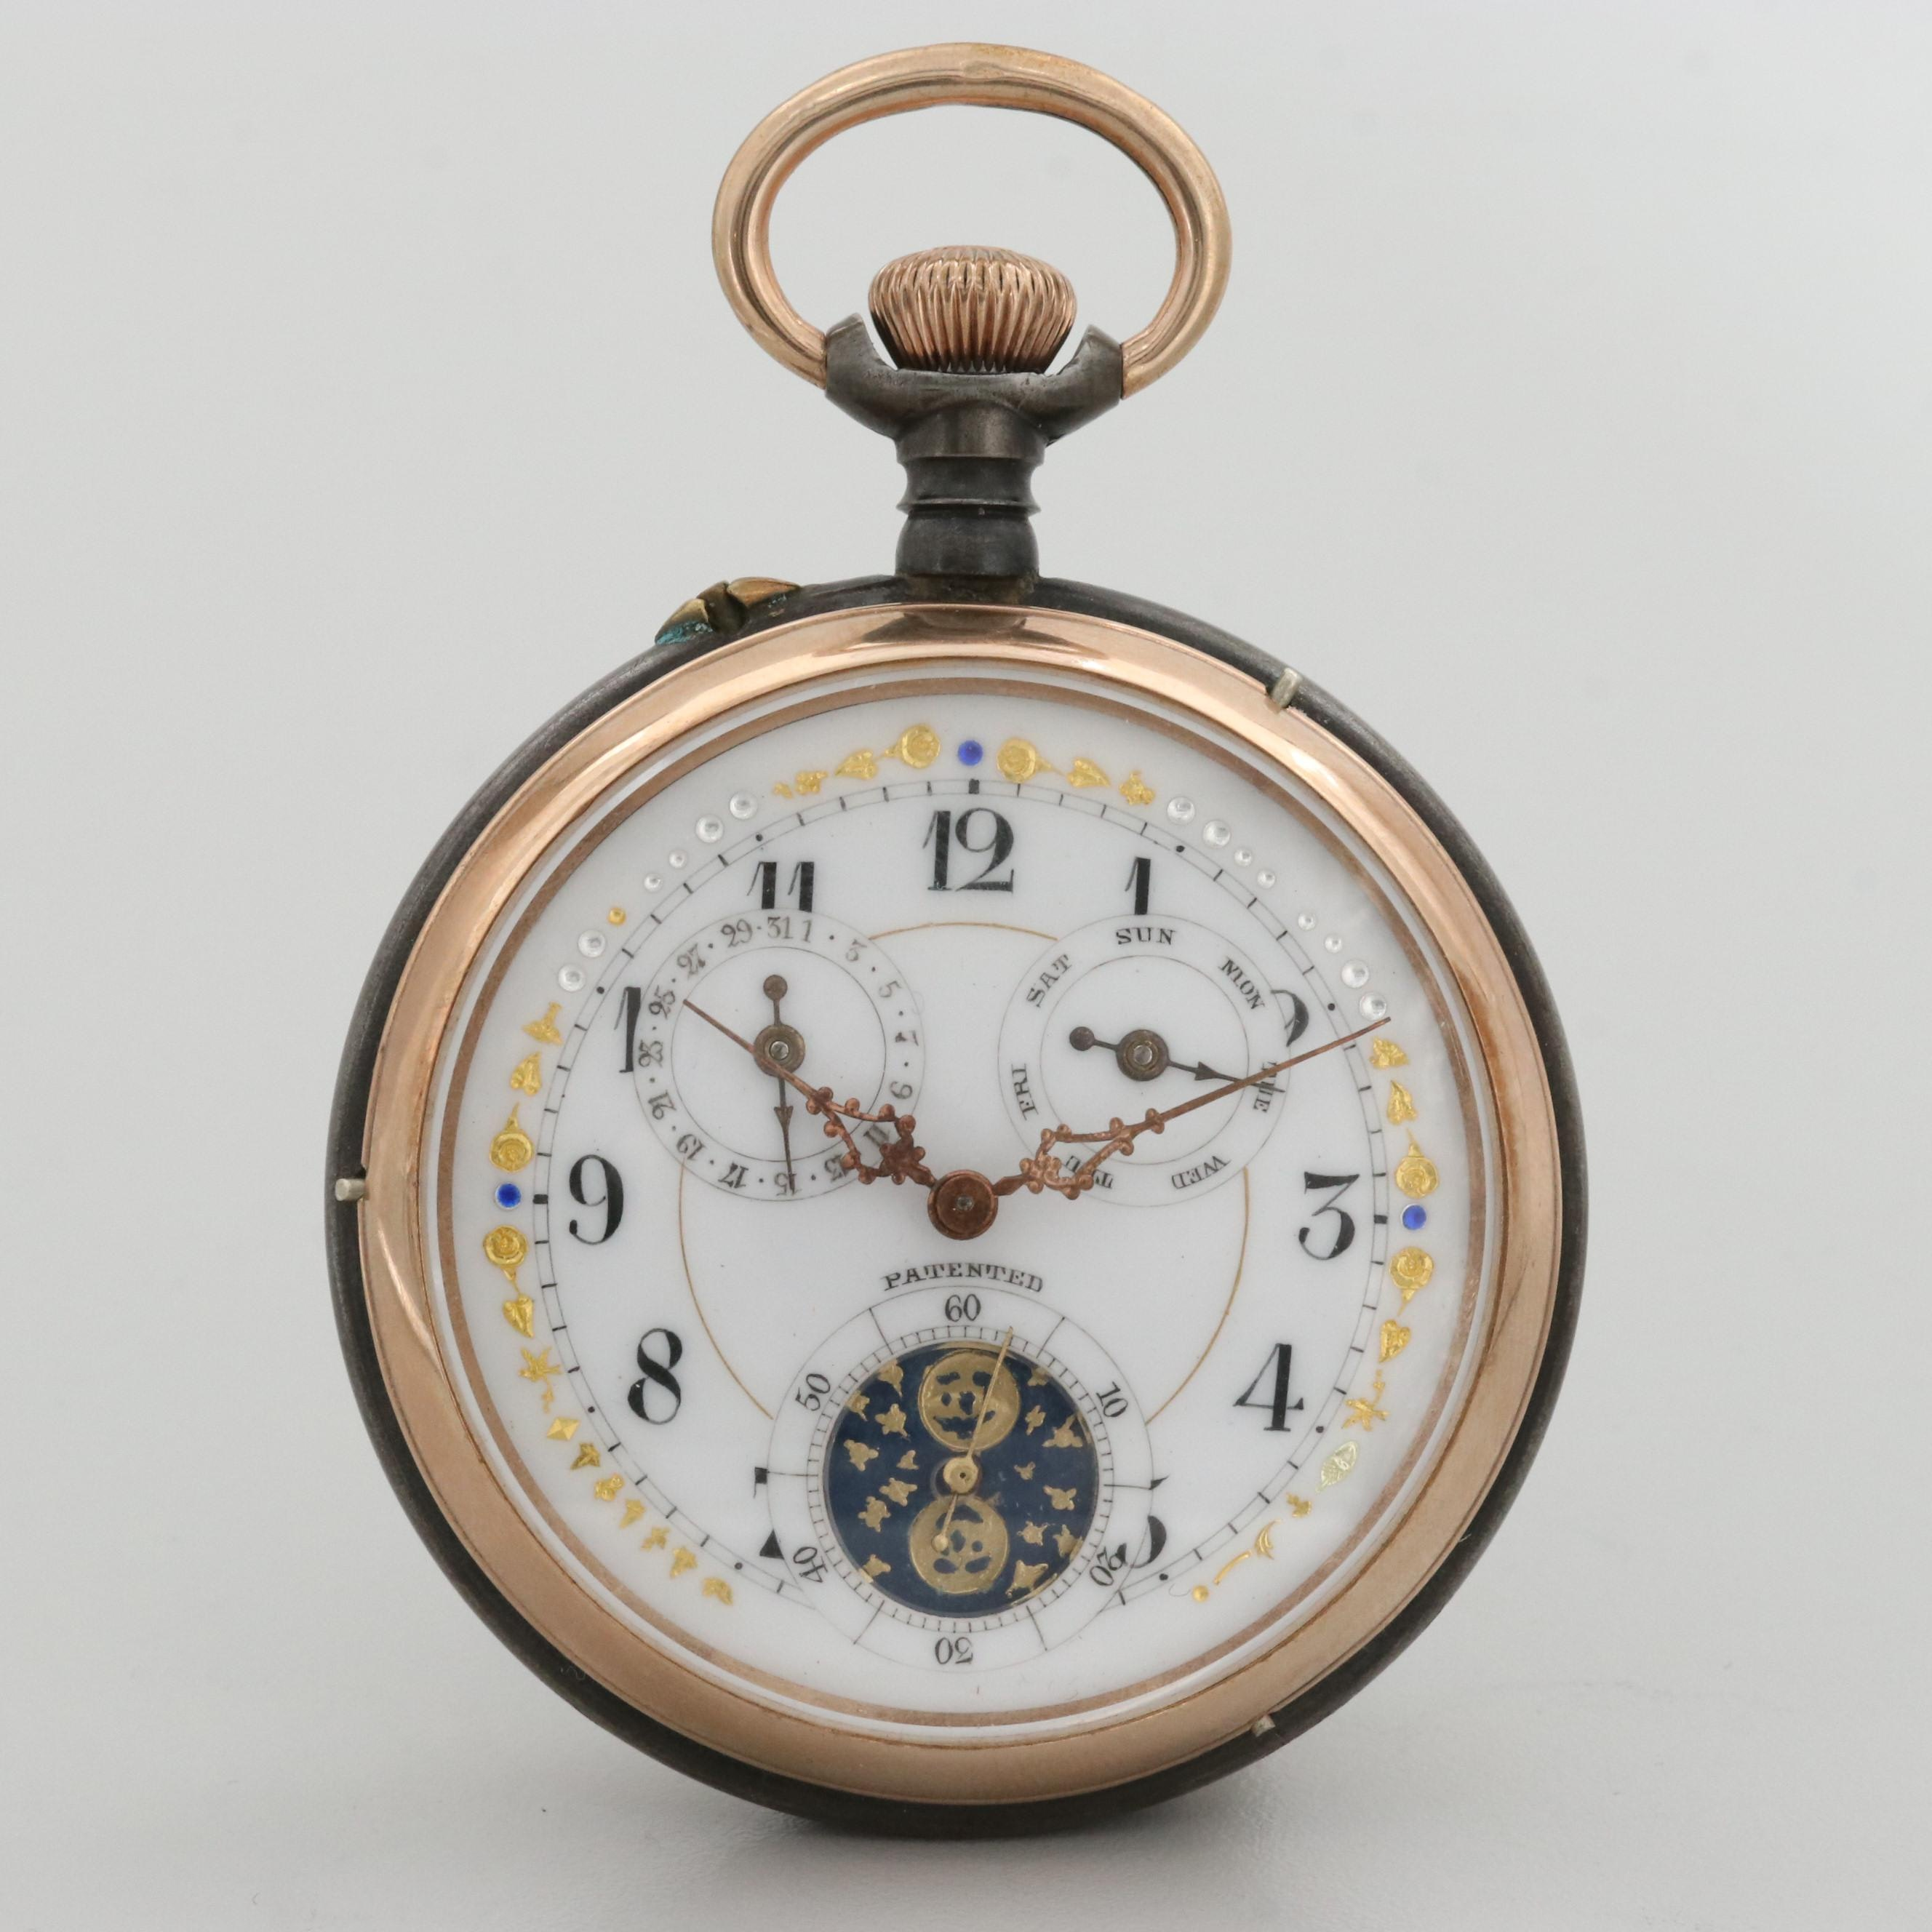 Antique Swiss Gunmetal and Gold Tone Pocket Watch With Moon Phase Dial and Date